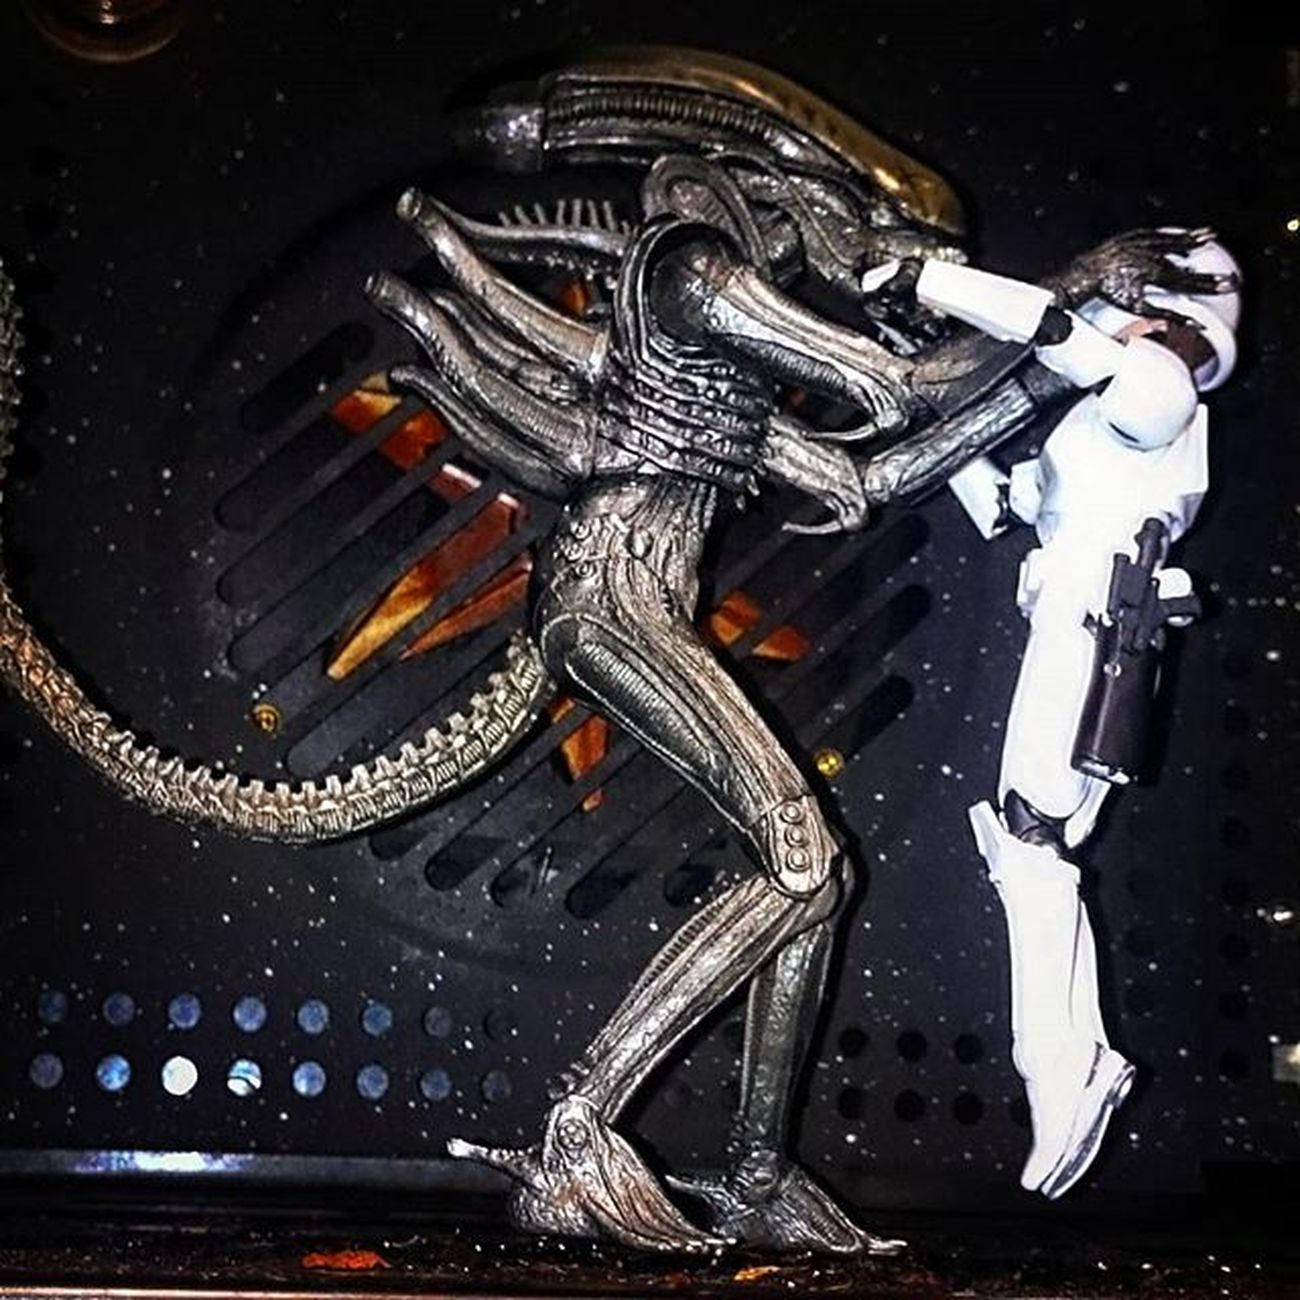 Norman and Geoff seem to have got off on the wrong foot! Alternative angle not sure if it's better!! Toyslagram_Starwars Toyoutsiders Starwarsblackseries Toyphotography Toyunion Justanothertoygroup Toydiscovery @toydiscovery Starwarselite @starwars_3lite Salaciouscrumb Normanthetrooper Geoffthexenomorph Alien Xenomorph